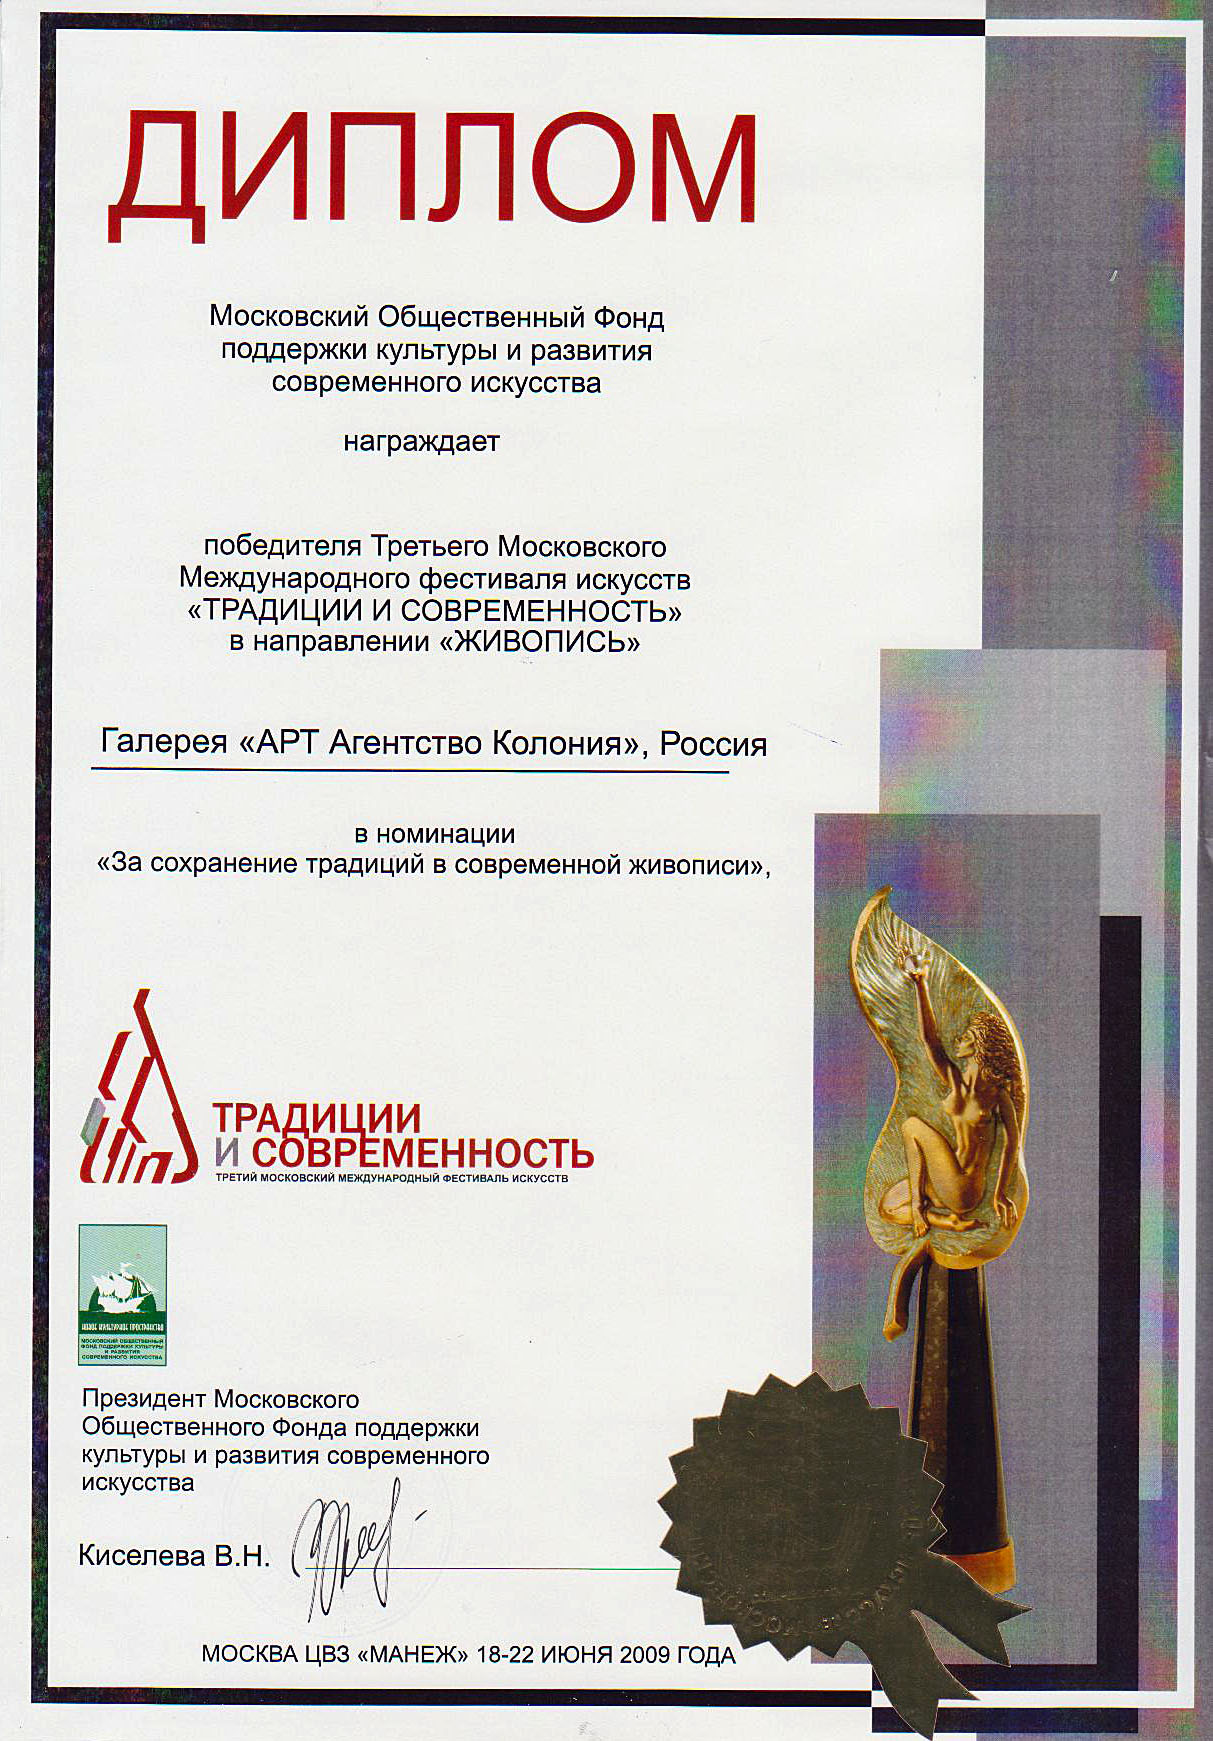 Award diploma 'For the preservation of tradition in modern painting'